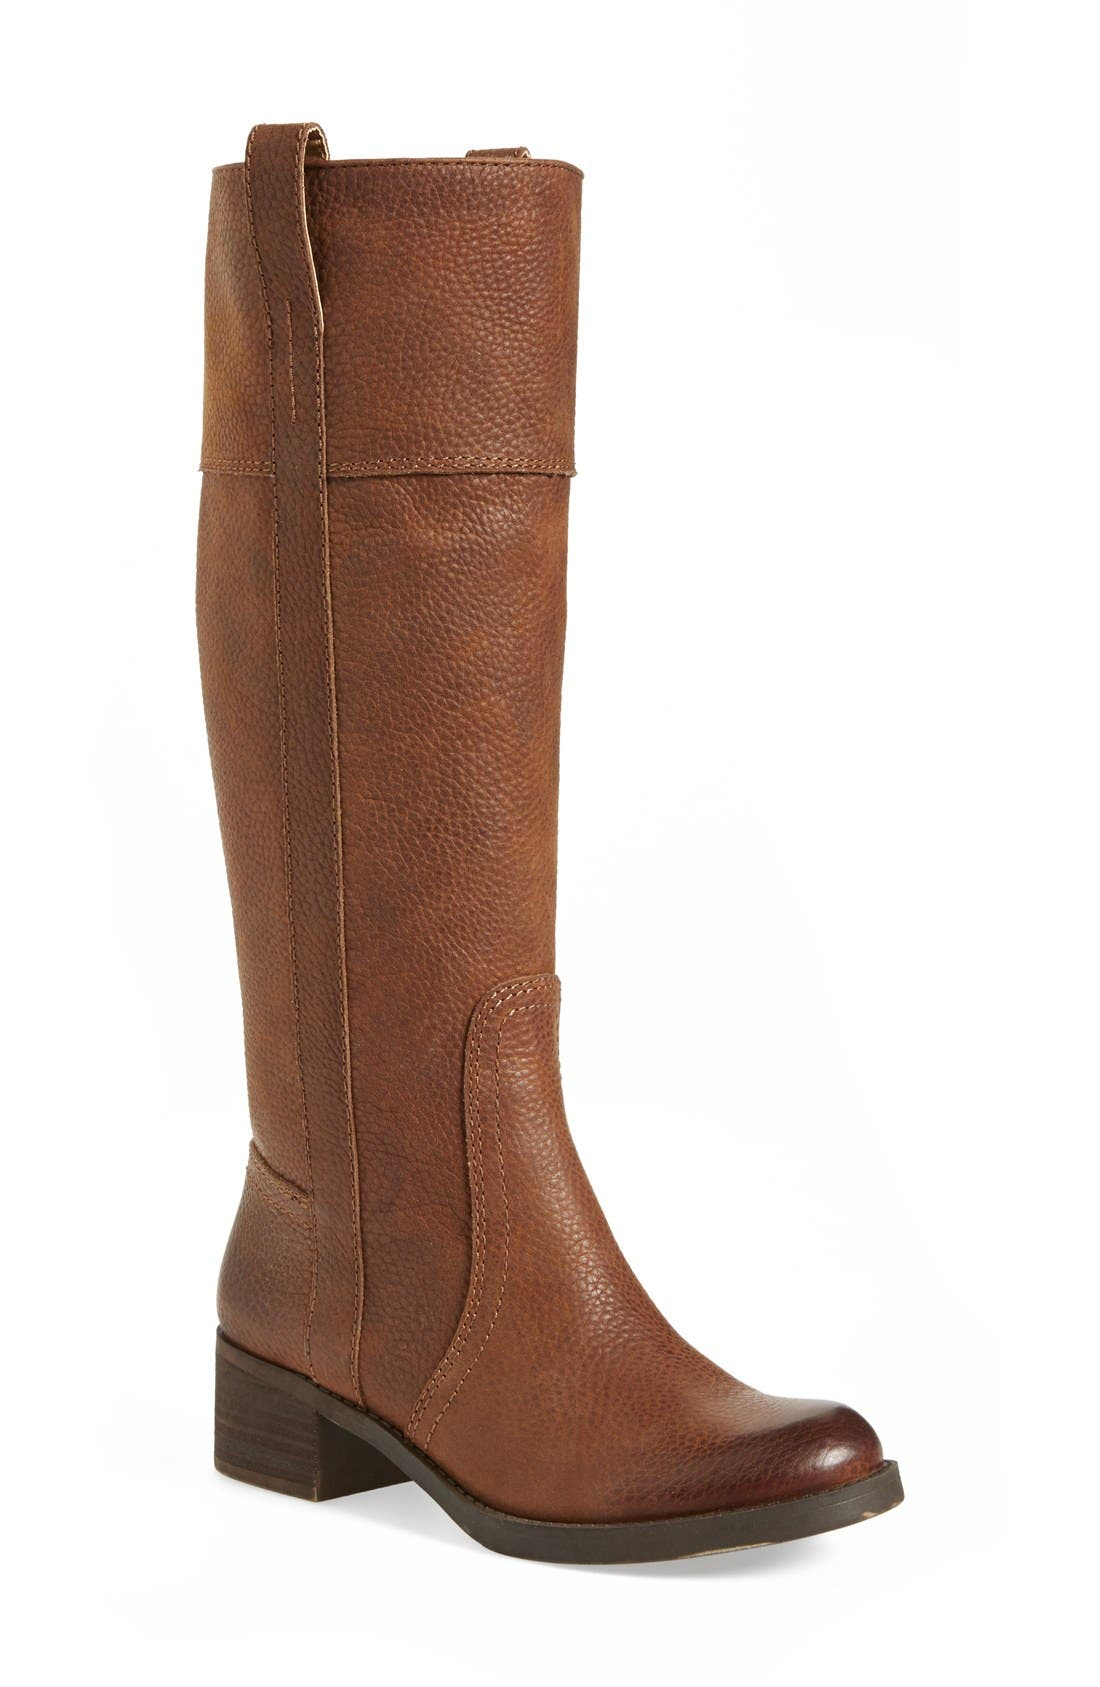 Alternate Image 1 Selected - Lucky Brand 'Heloisse' Boot (Women)